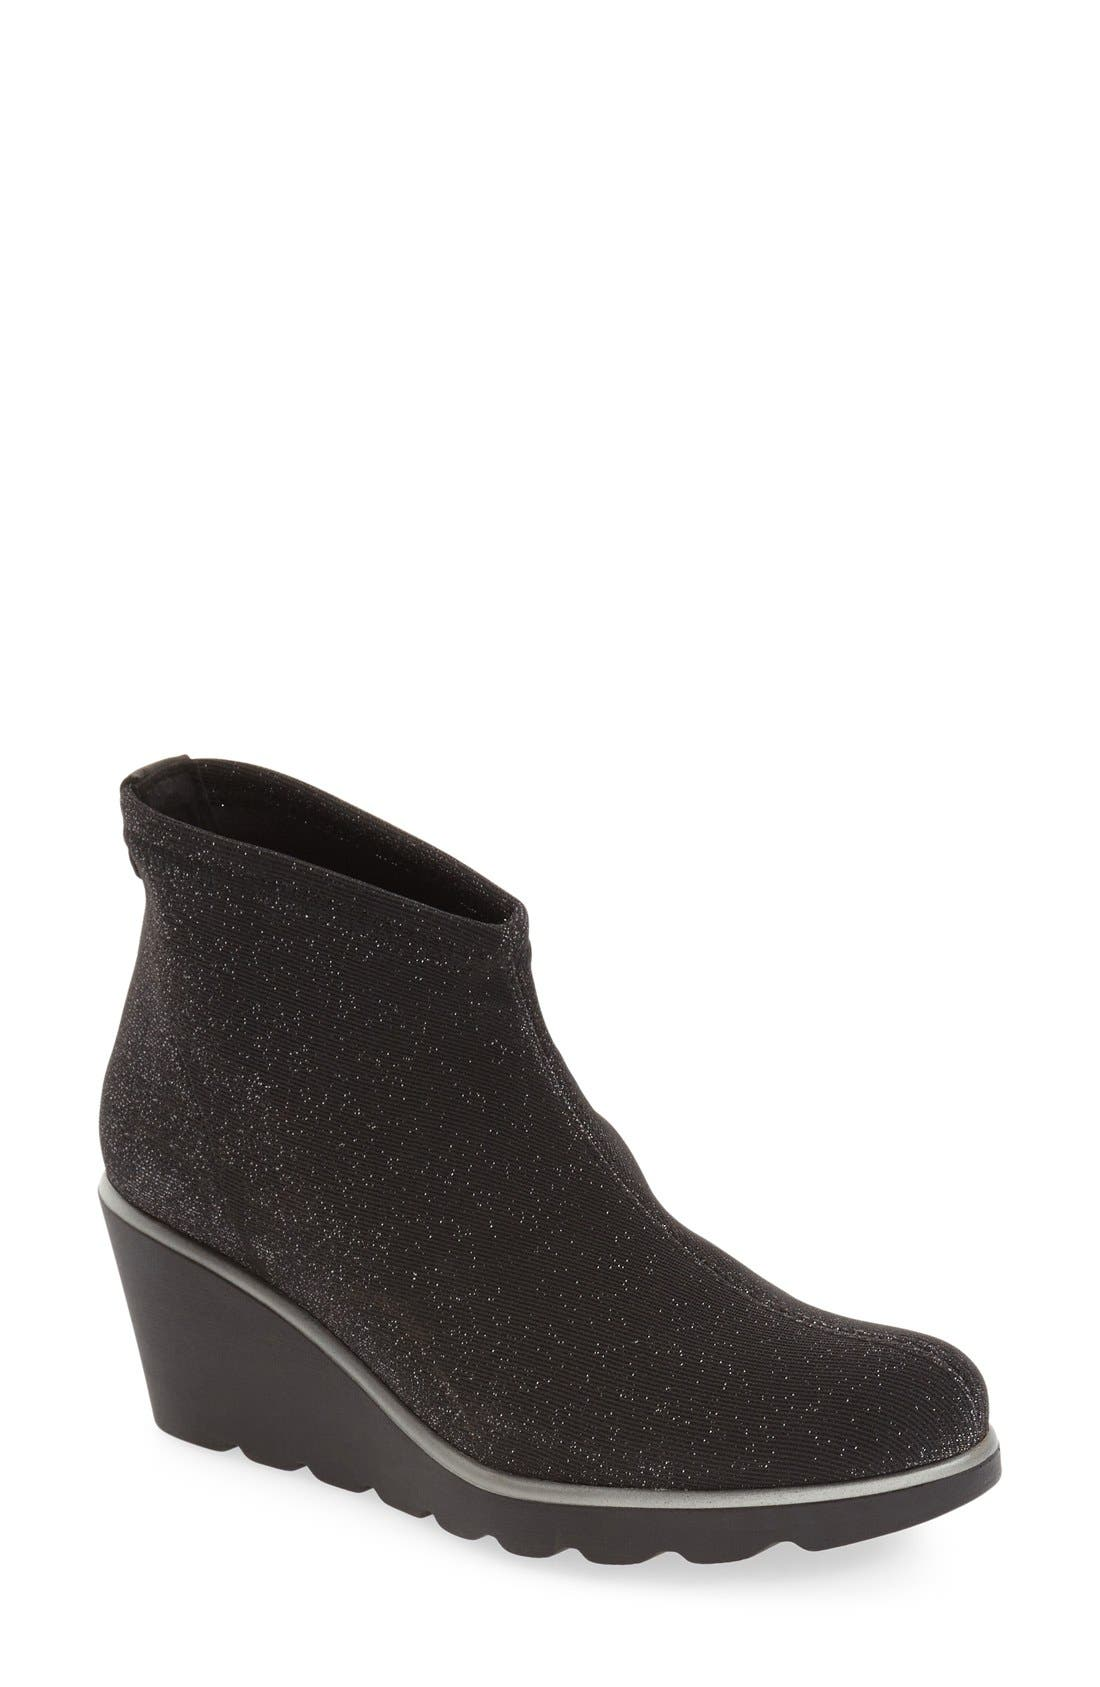 'Baltic' Wedge Bootie,                         Main,                         color, 001